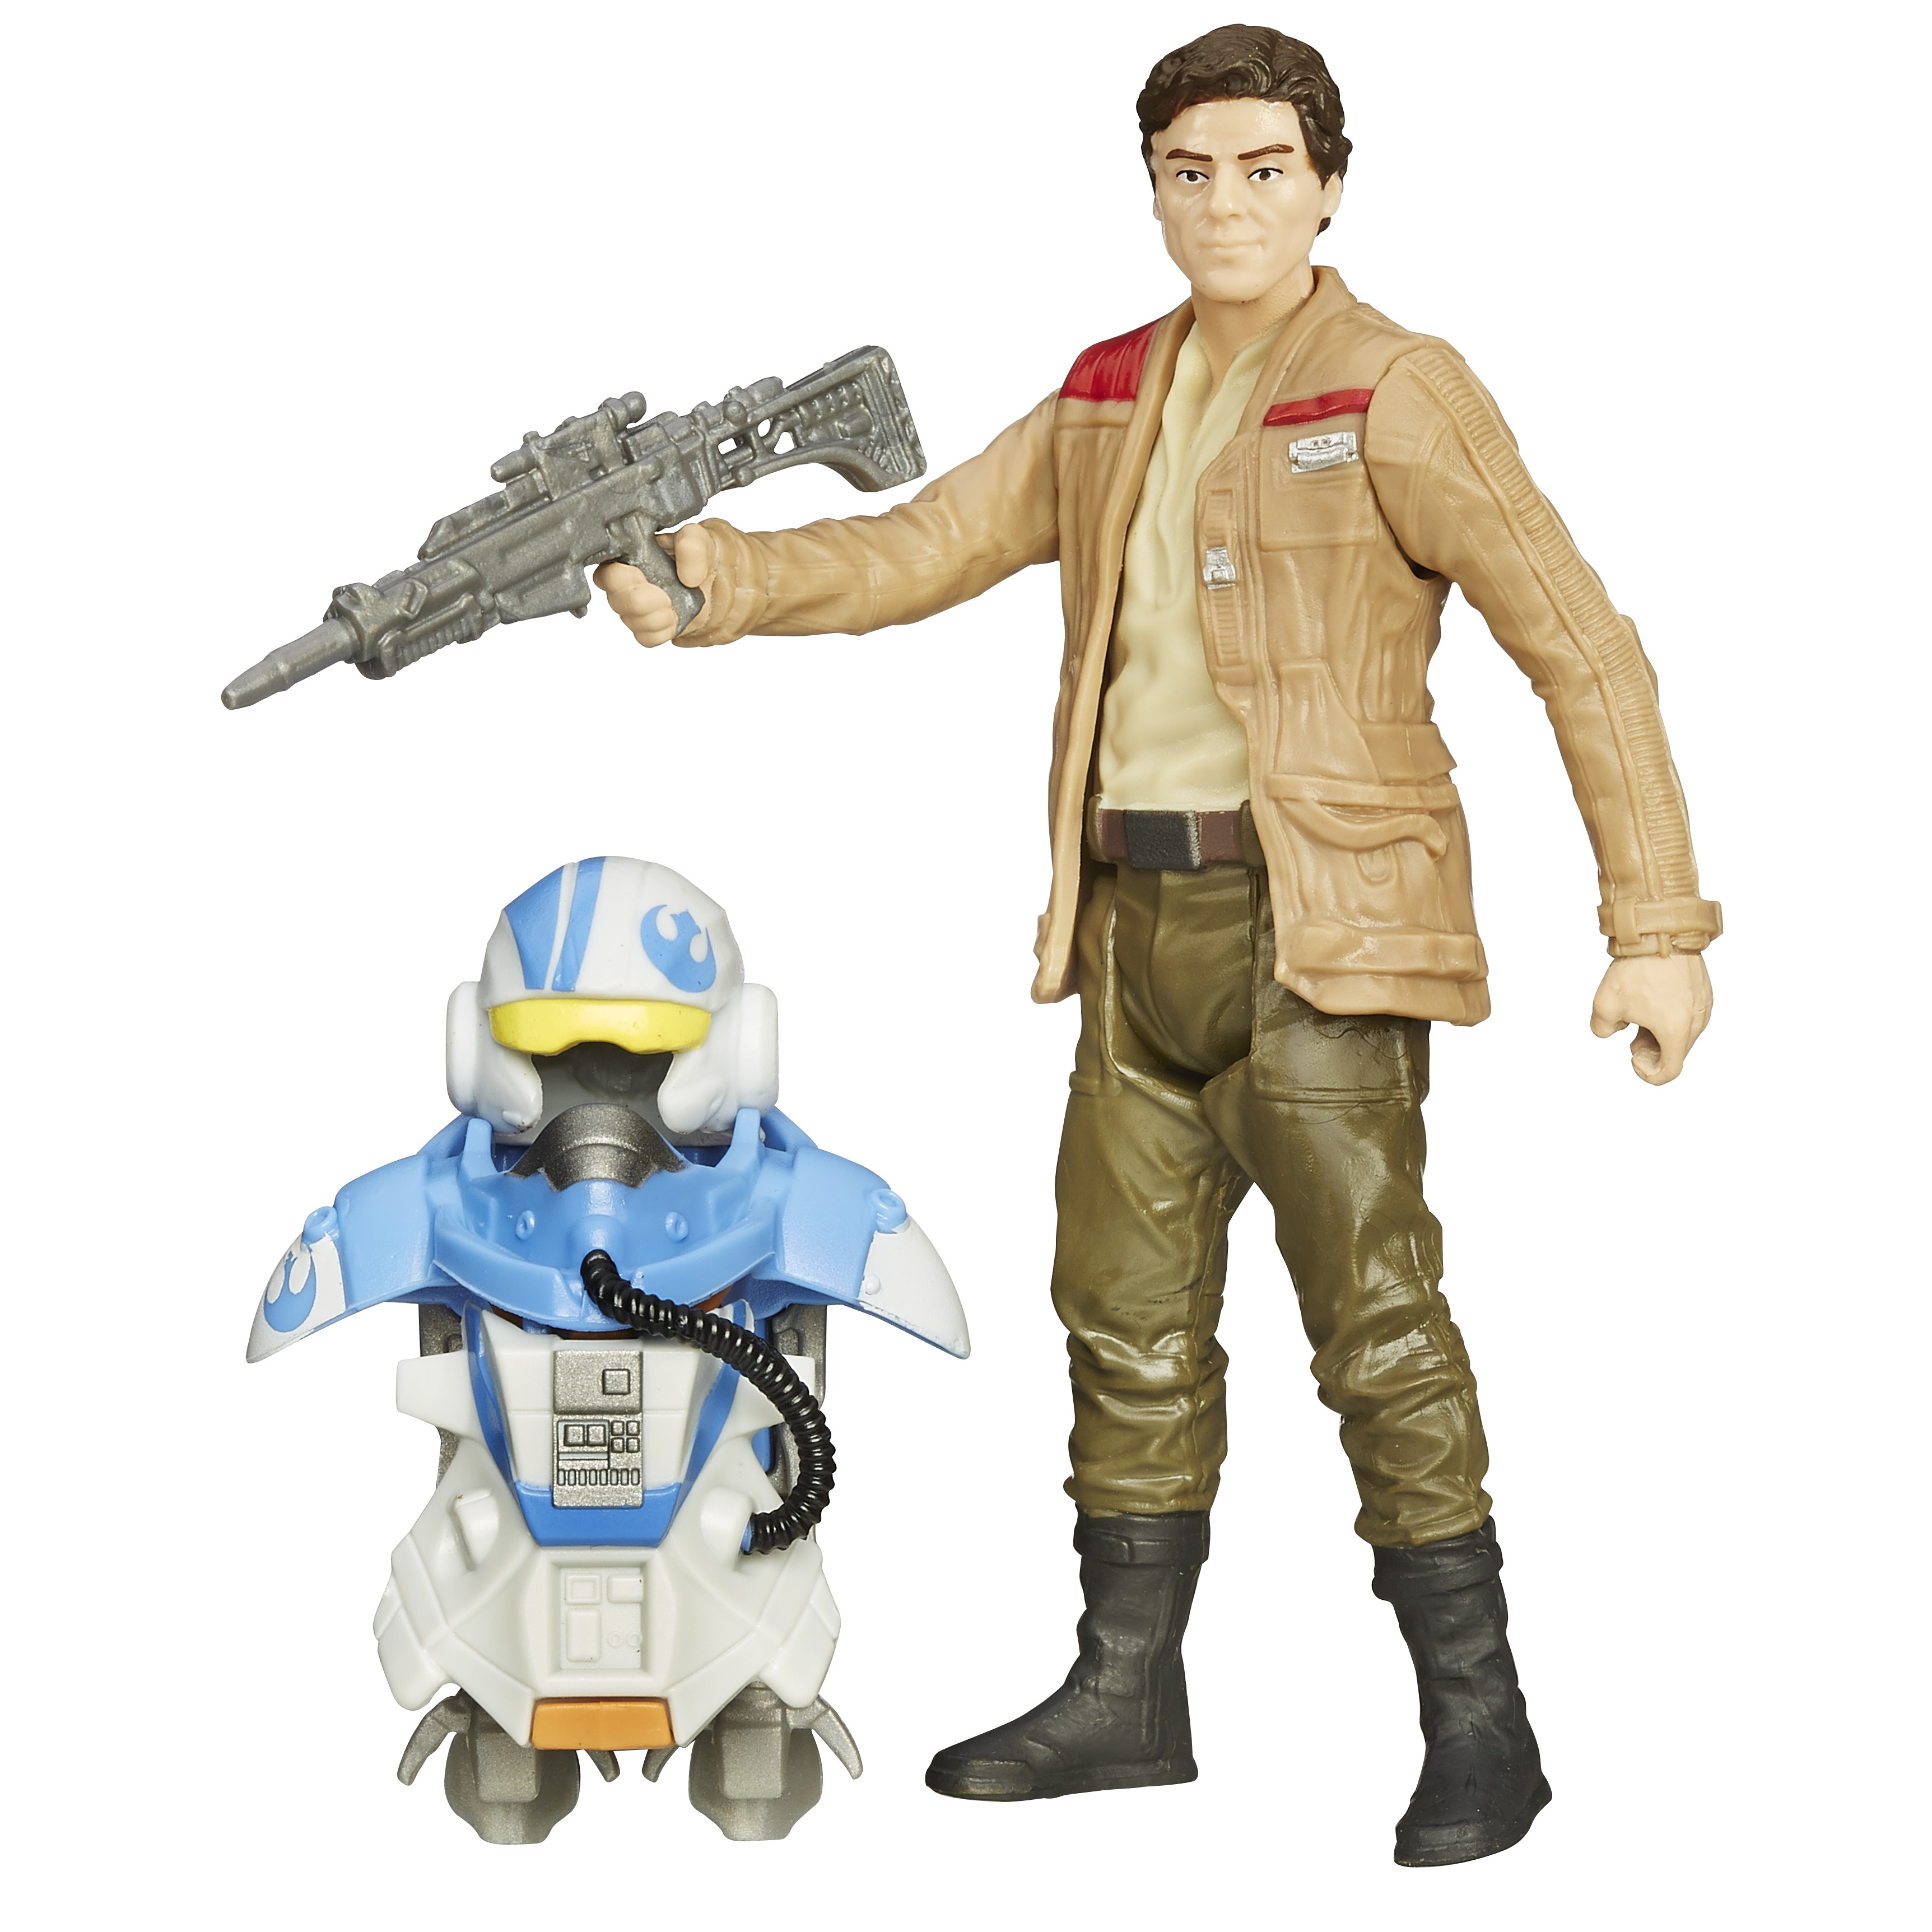 <b>Star Wars <i>The Force Awakens</i> Armor Up</b>; Poe